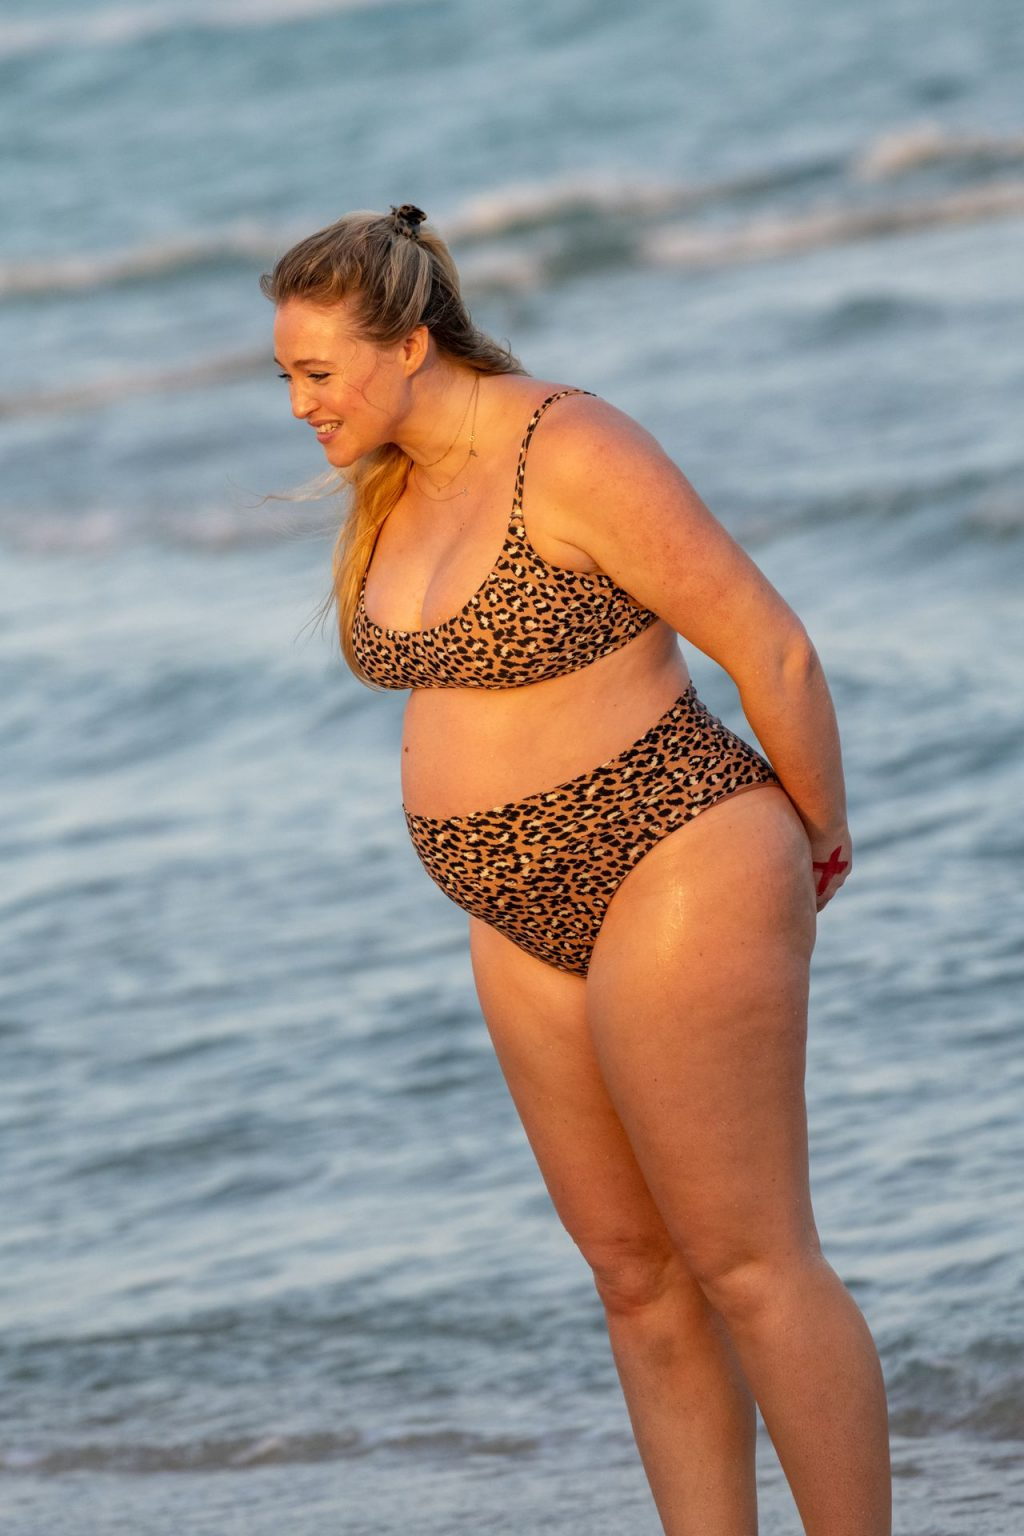 Iskra Lawrence Sexy The Fappening Blog 26 1024x1536 - Heavily Pregnant Model Iskra Lawrence Takes A Sunset Dip In Miami Beach (44 Photos)